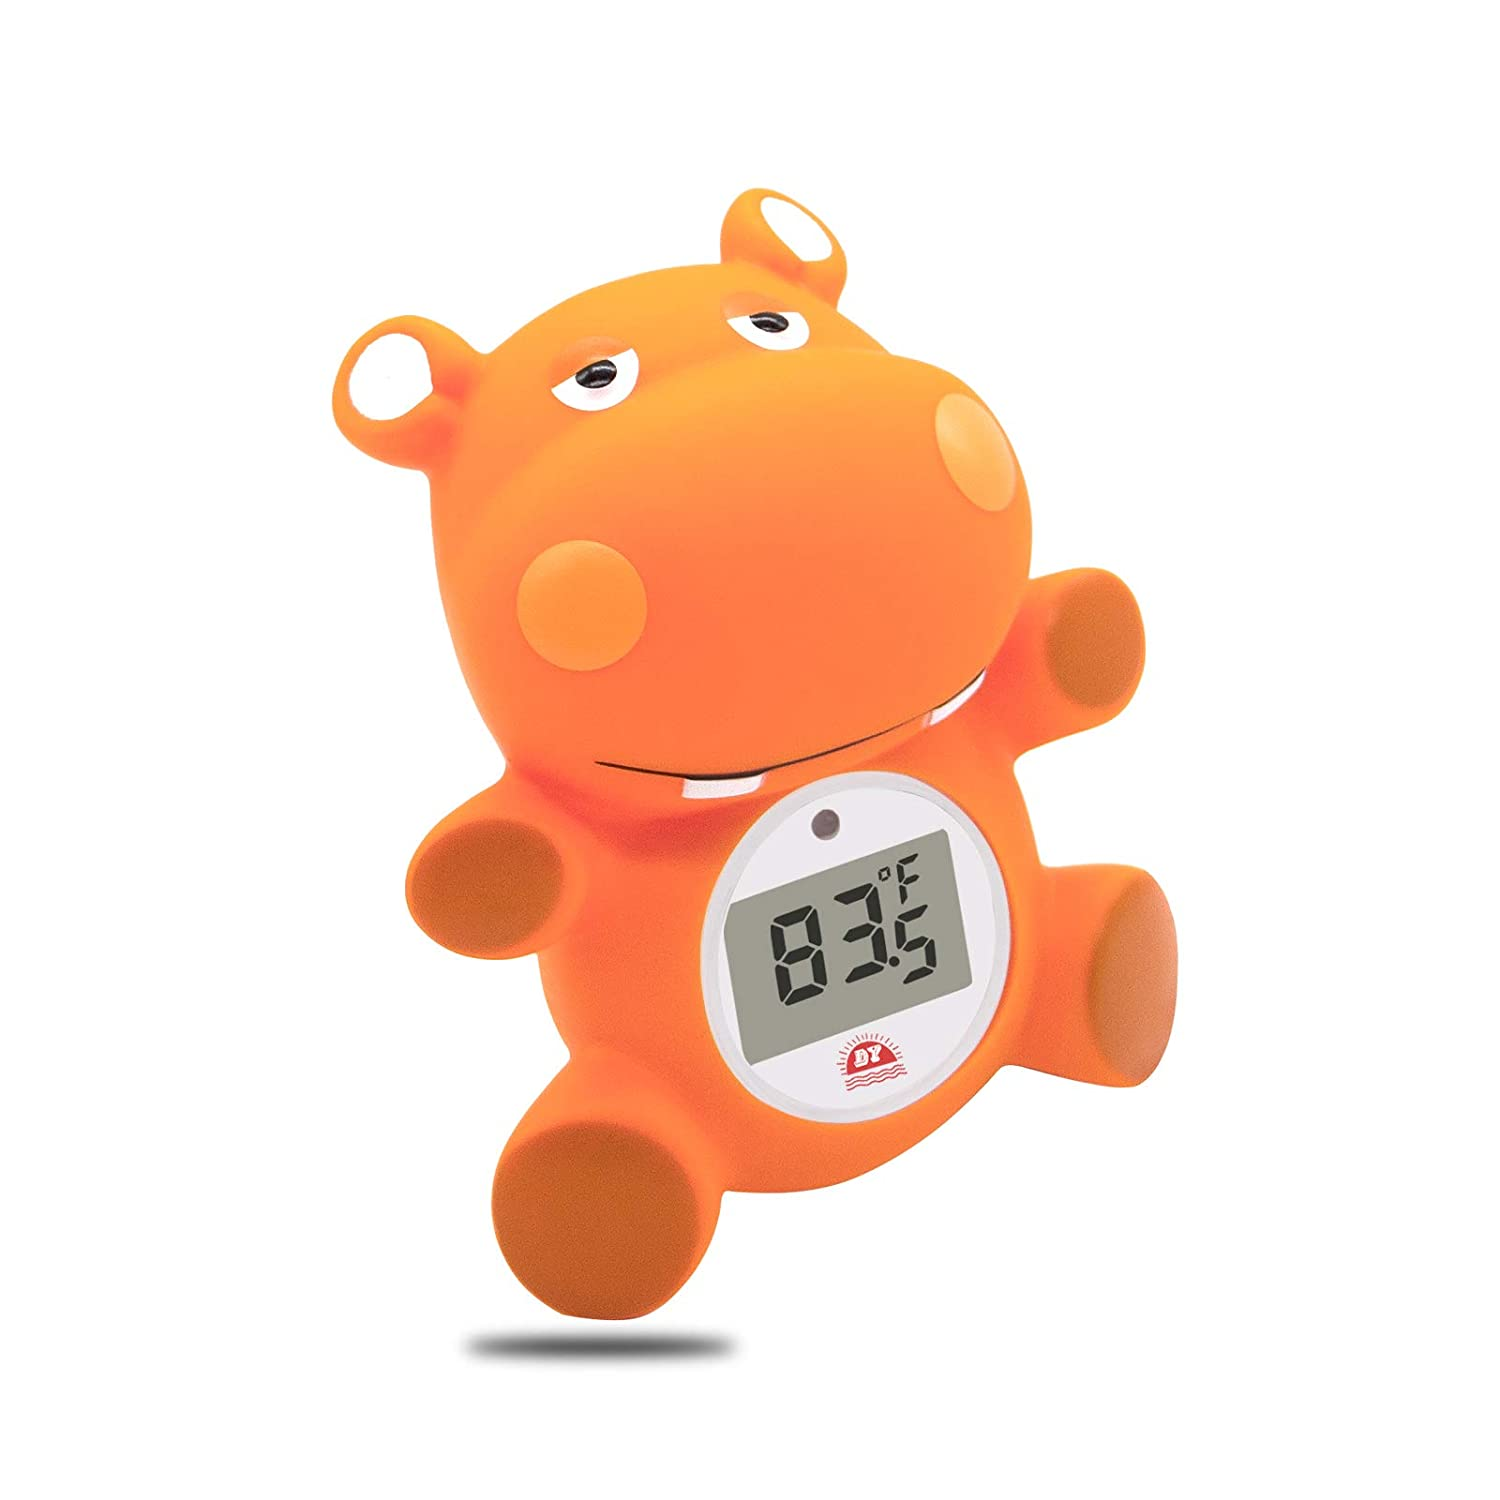 Doli Yearning Baby Bath Thermometer with Room Temperature| (℃/℉) Fahrenheit and Celsius| Hippo Lovely Shape|Kids' Bathroom Safety Products|BPA Free| Bath Toys